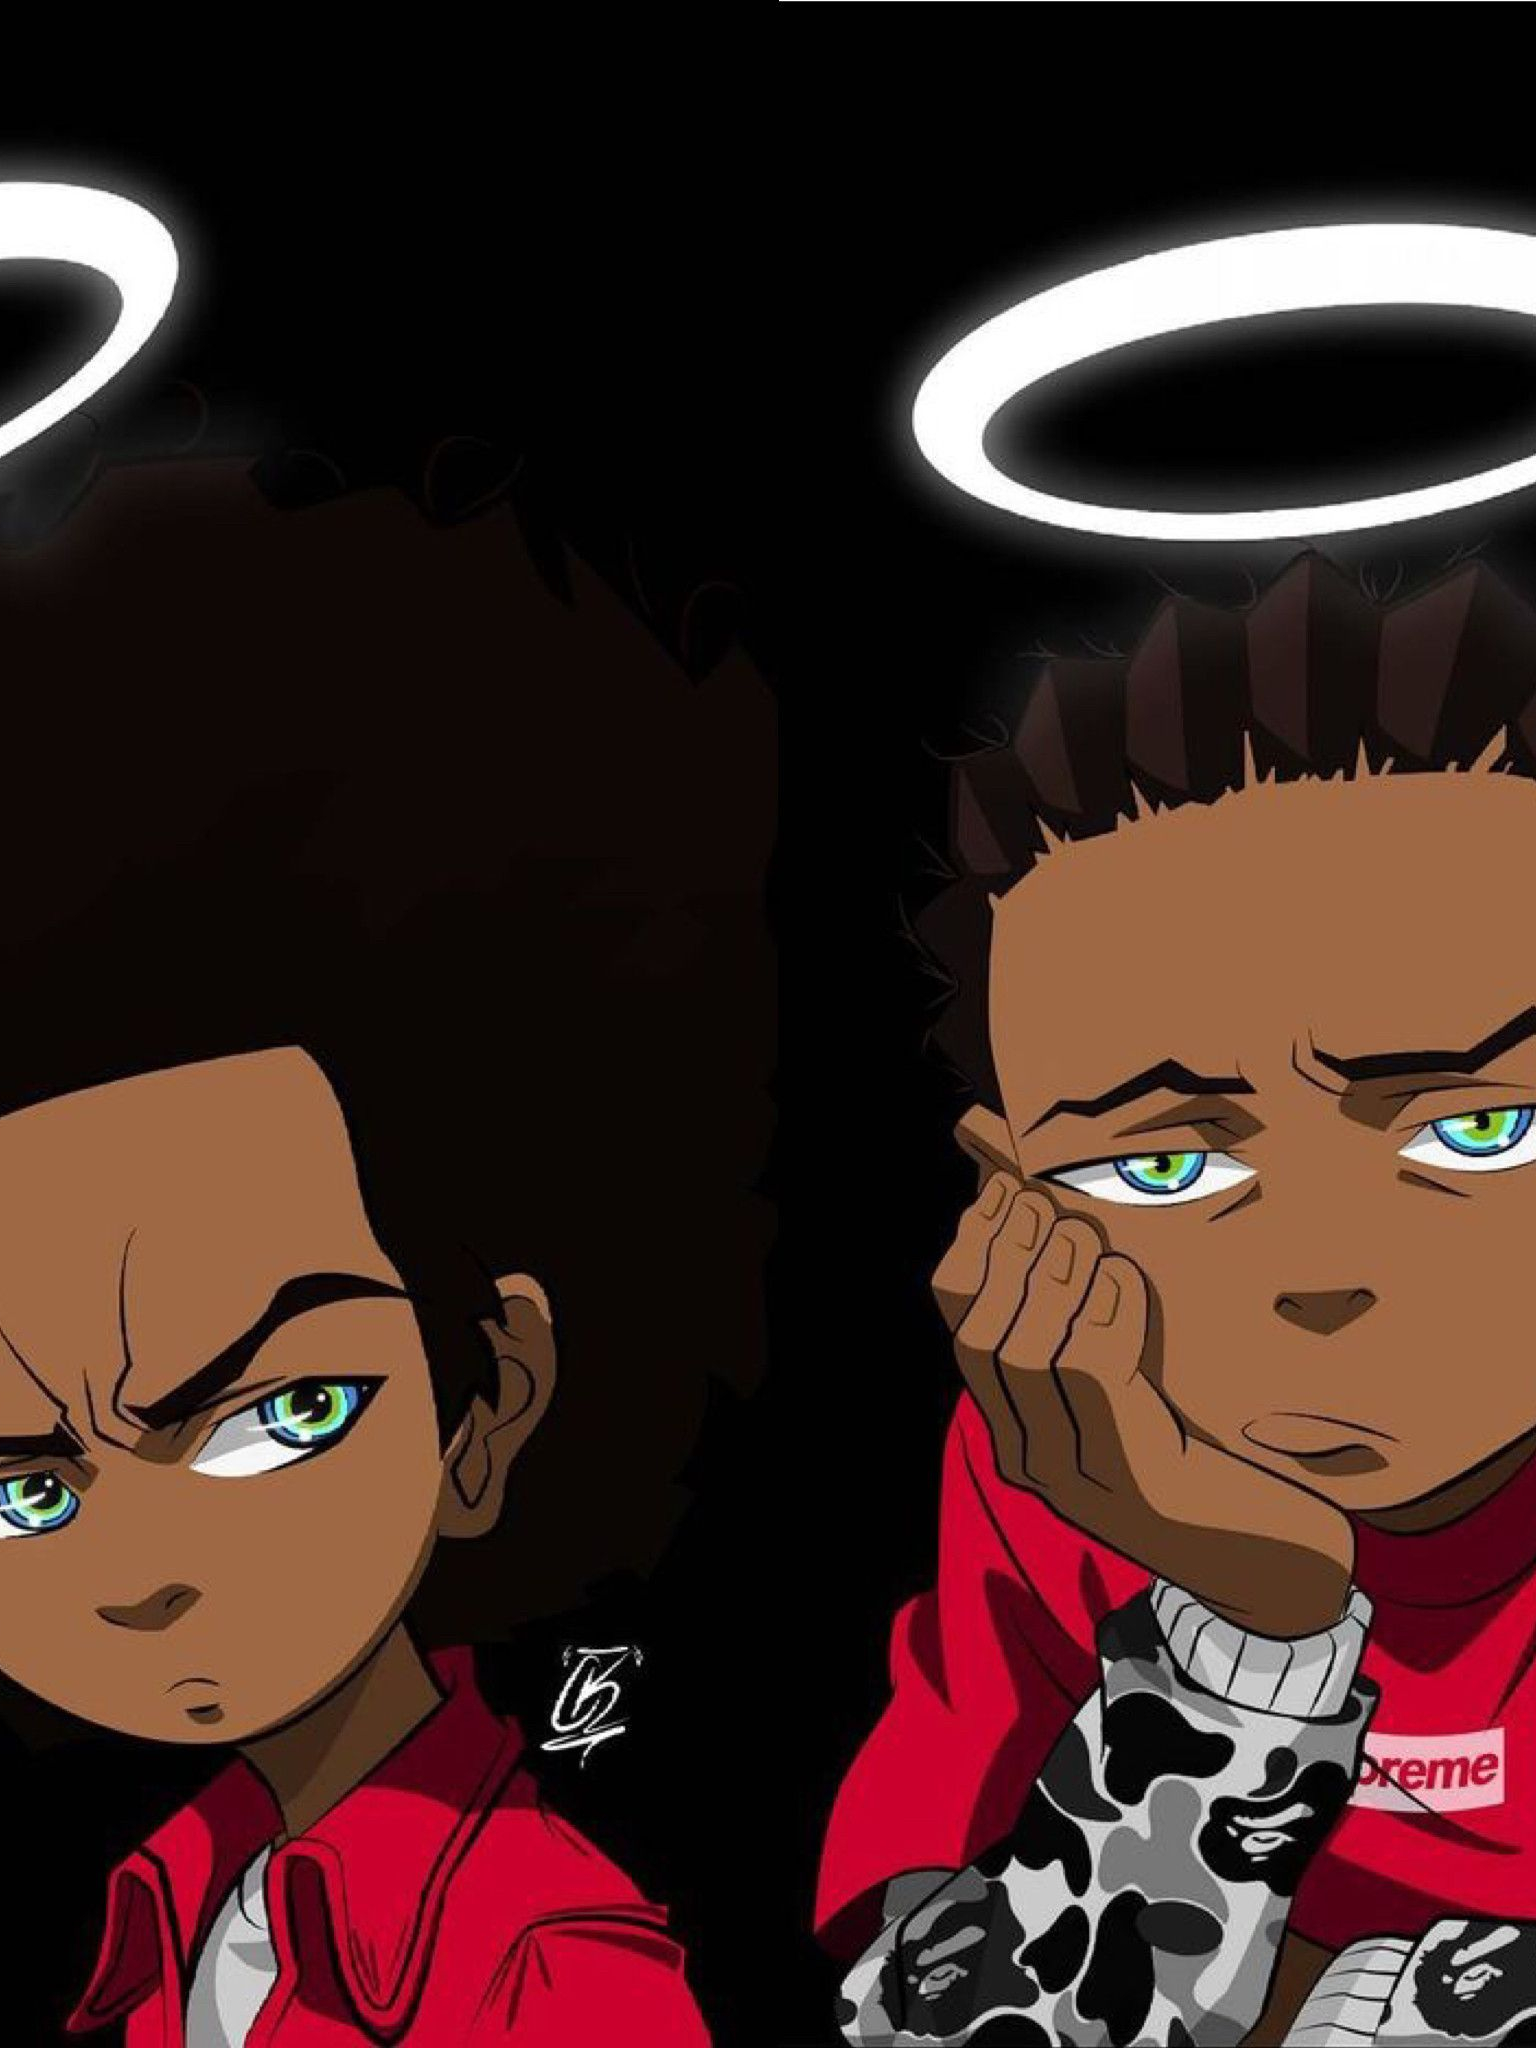 Free Download Boondocks Hypebeast Google Search Supreme Wallpaper